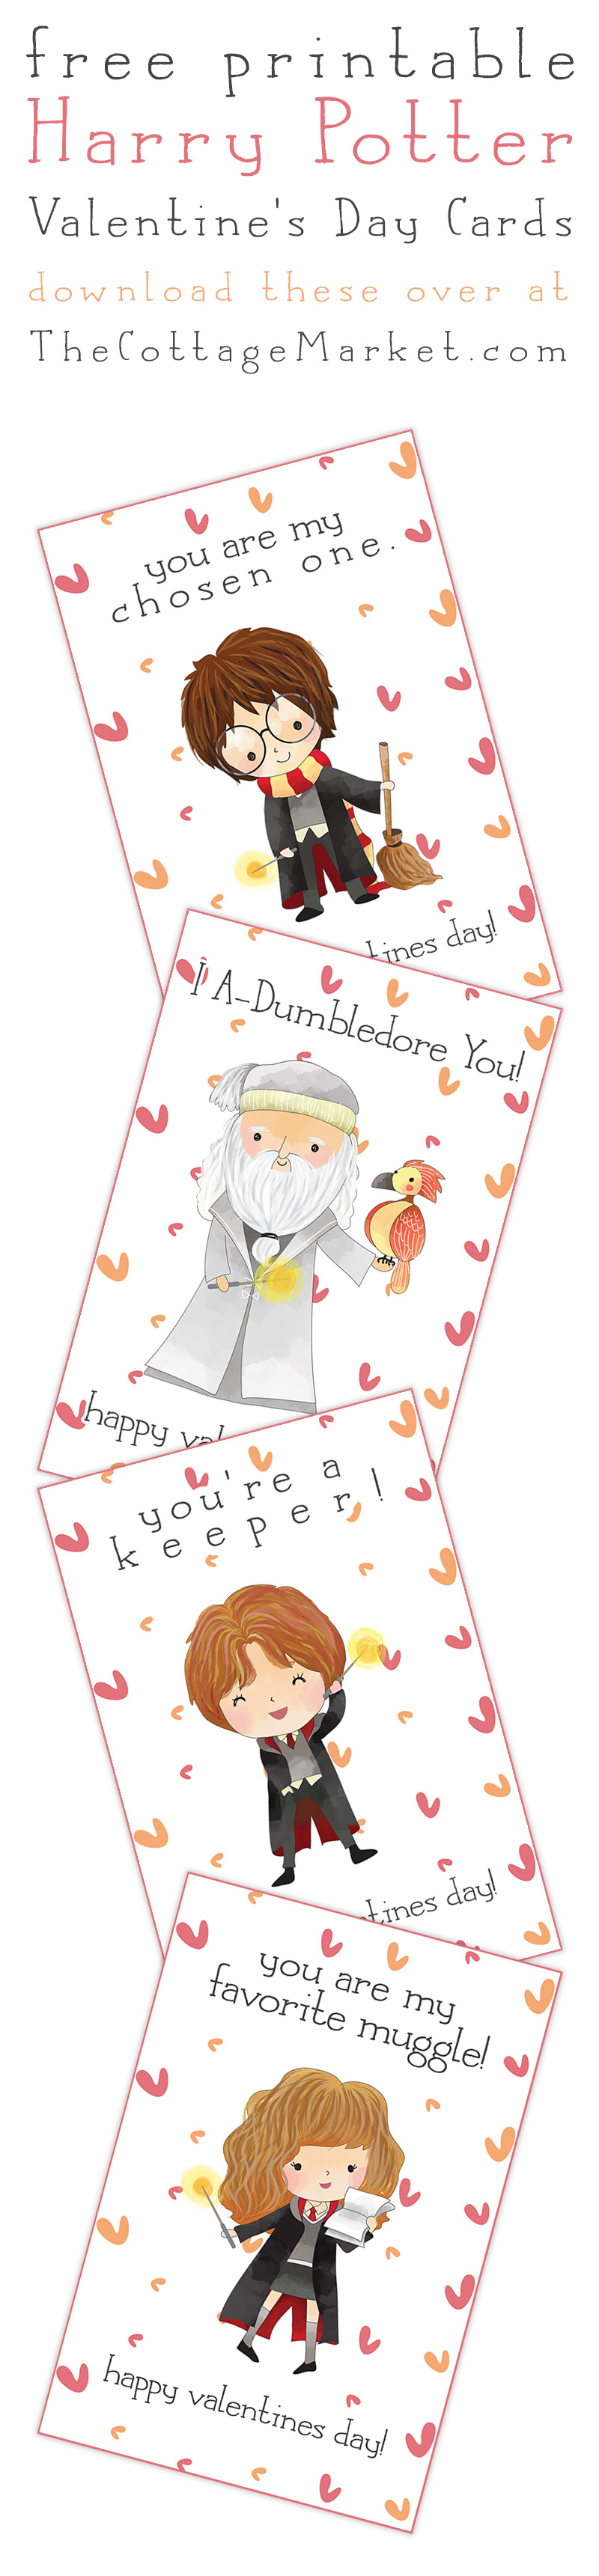 Keep Your Eyes Out For More Free Printables With Heart! These Printables  Are For Personal Use Only. Harry Potter Card